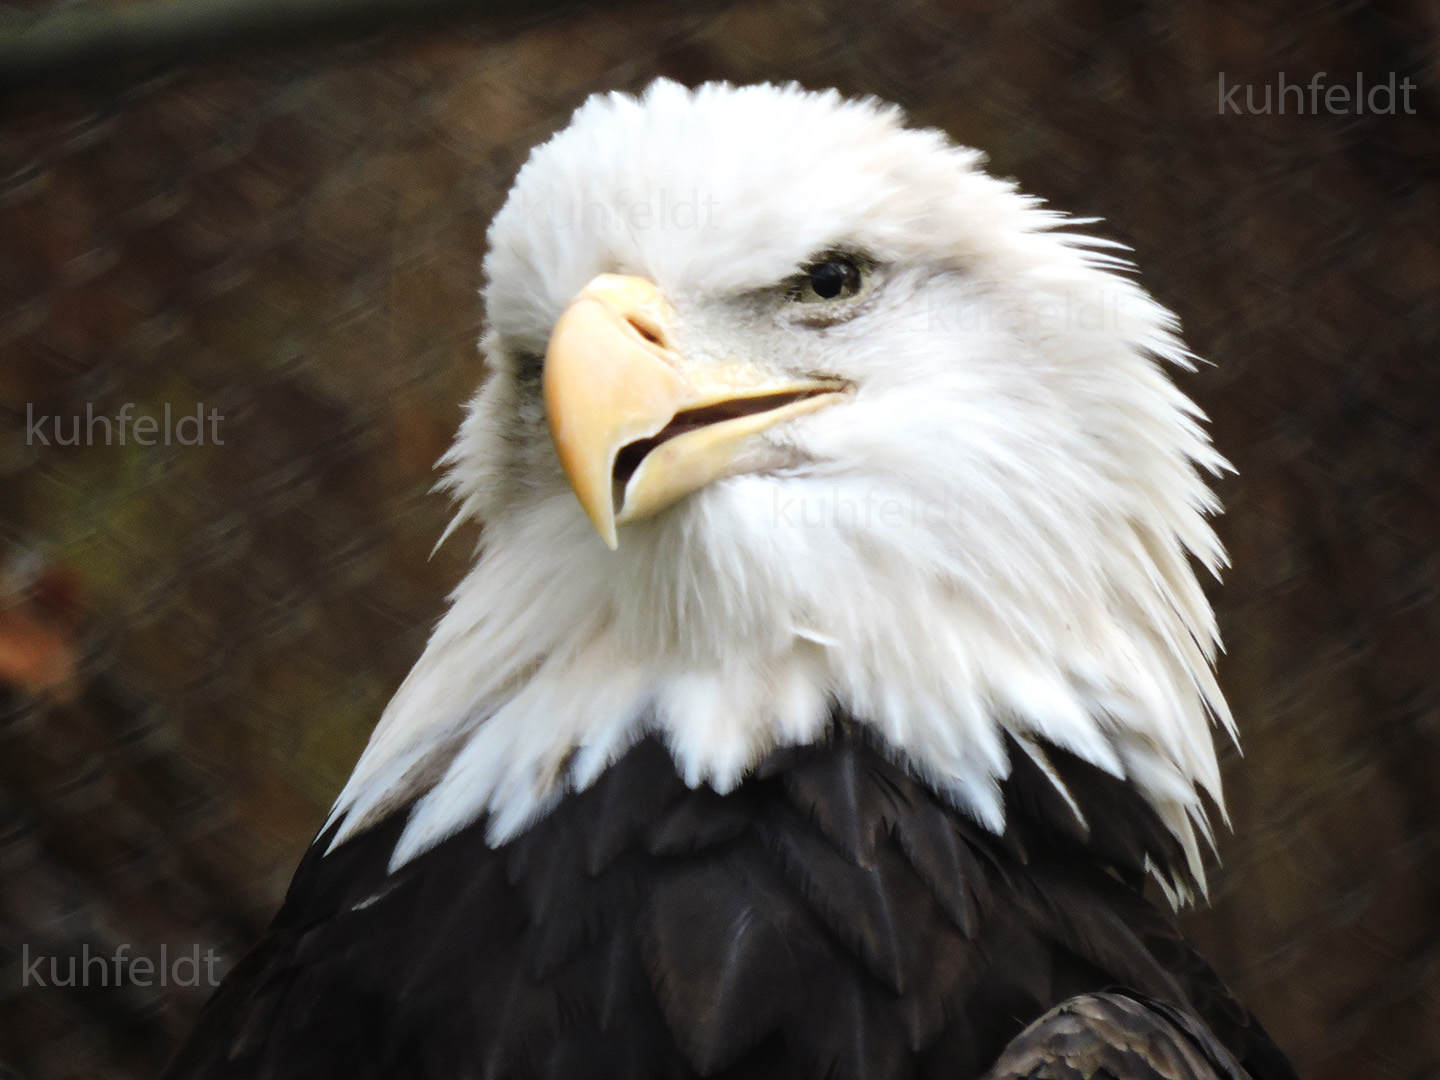 Blad Eagle; John Ball Zoo, Grand Rapids MI. Photo by Hank Kuhfeldt (c) 2016